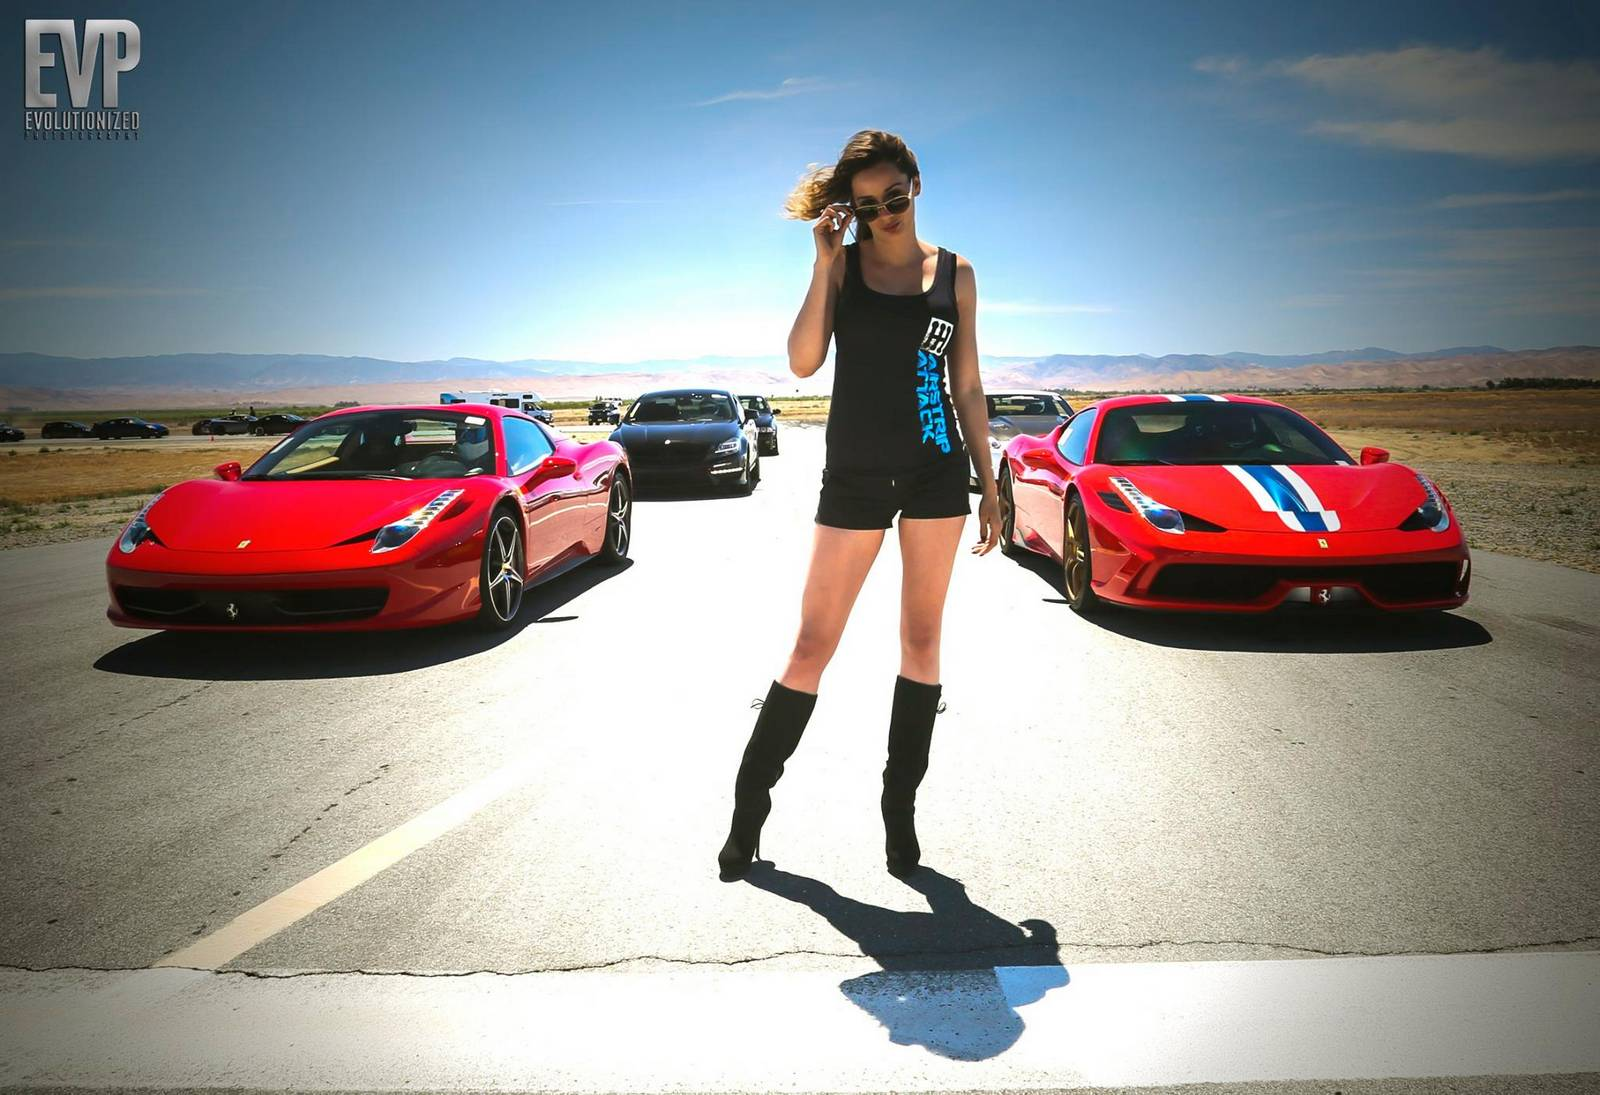 shift-s3ctor airstrip attack 8 gathers world u0026 39 s fastest supercars